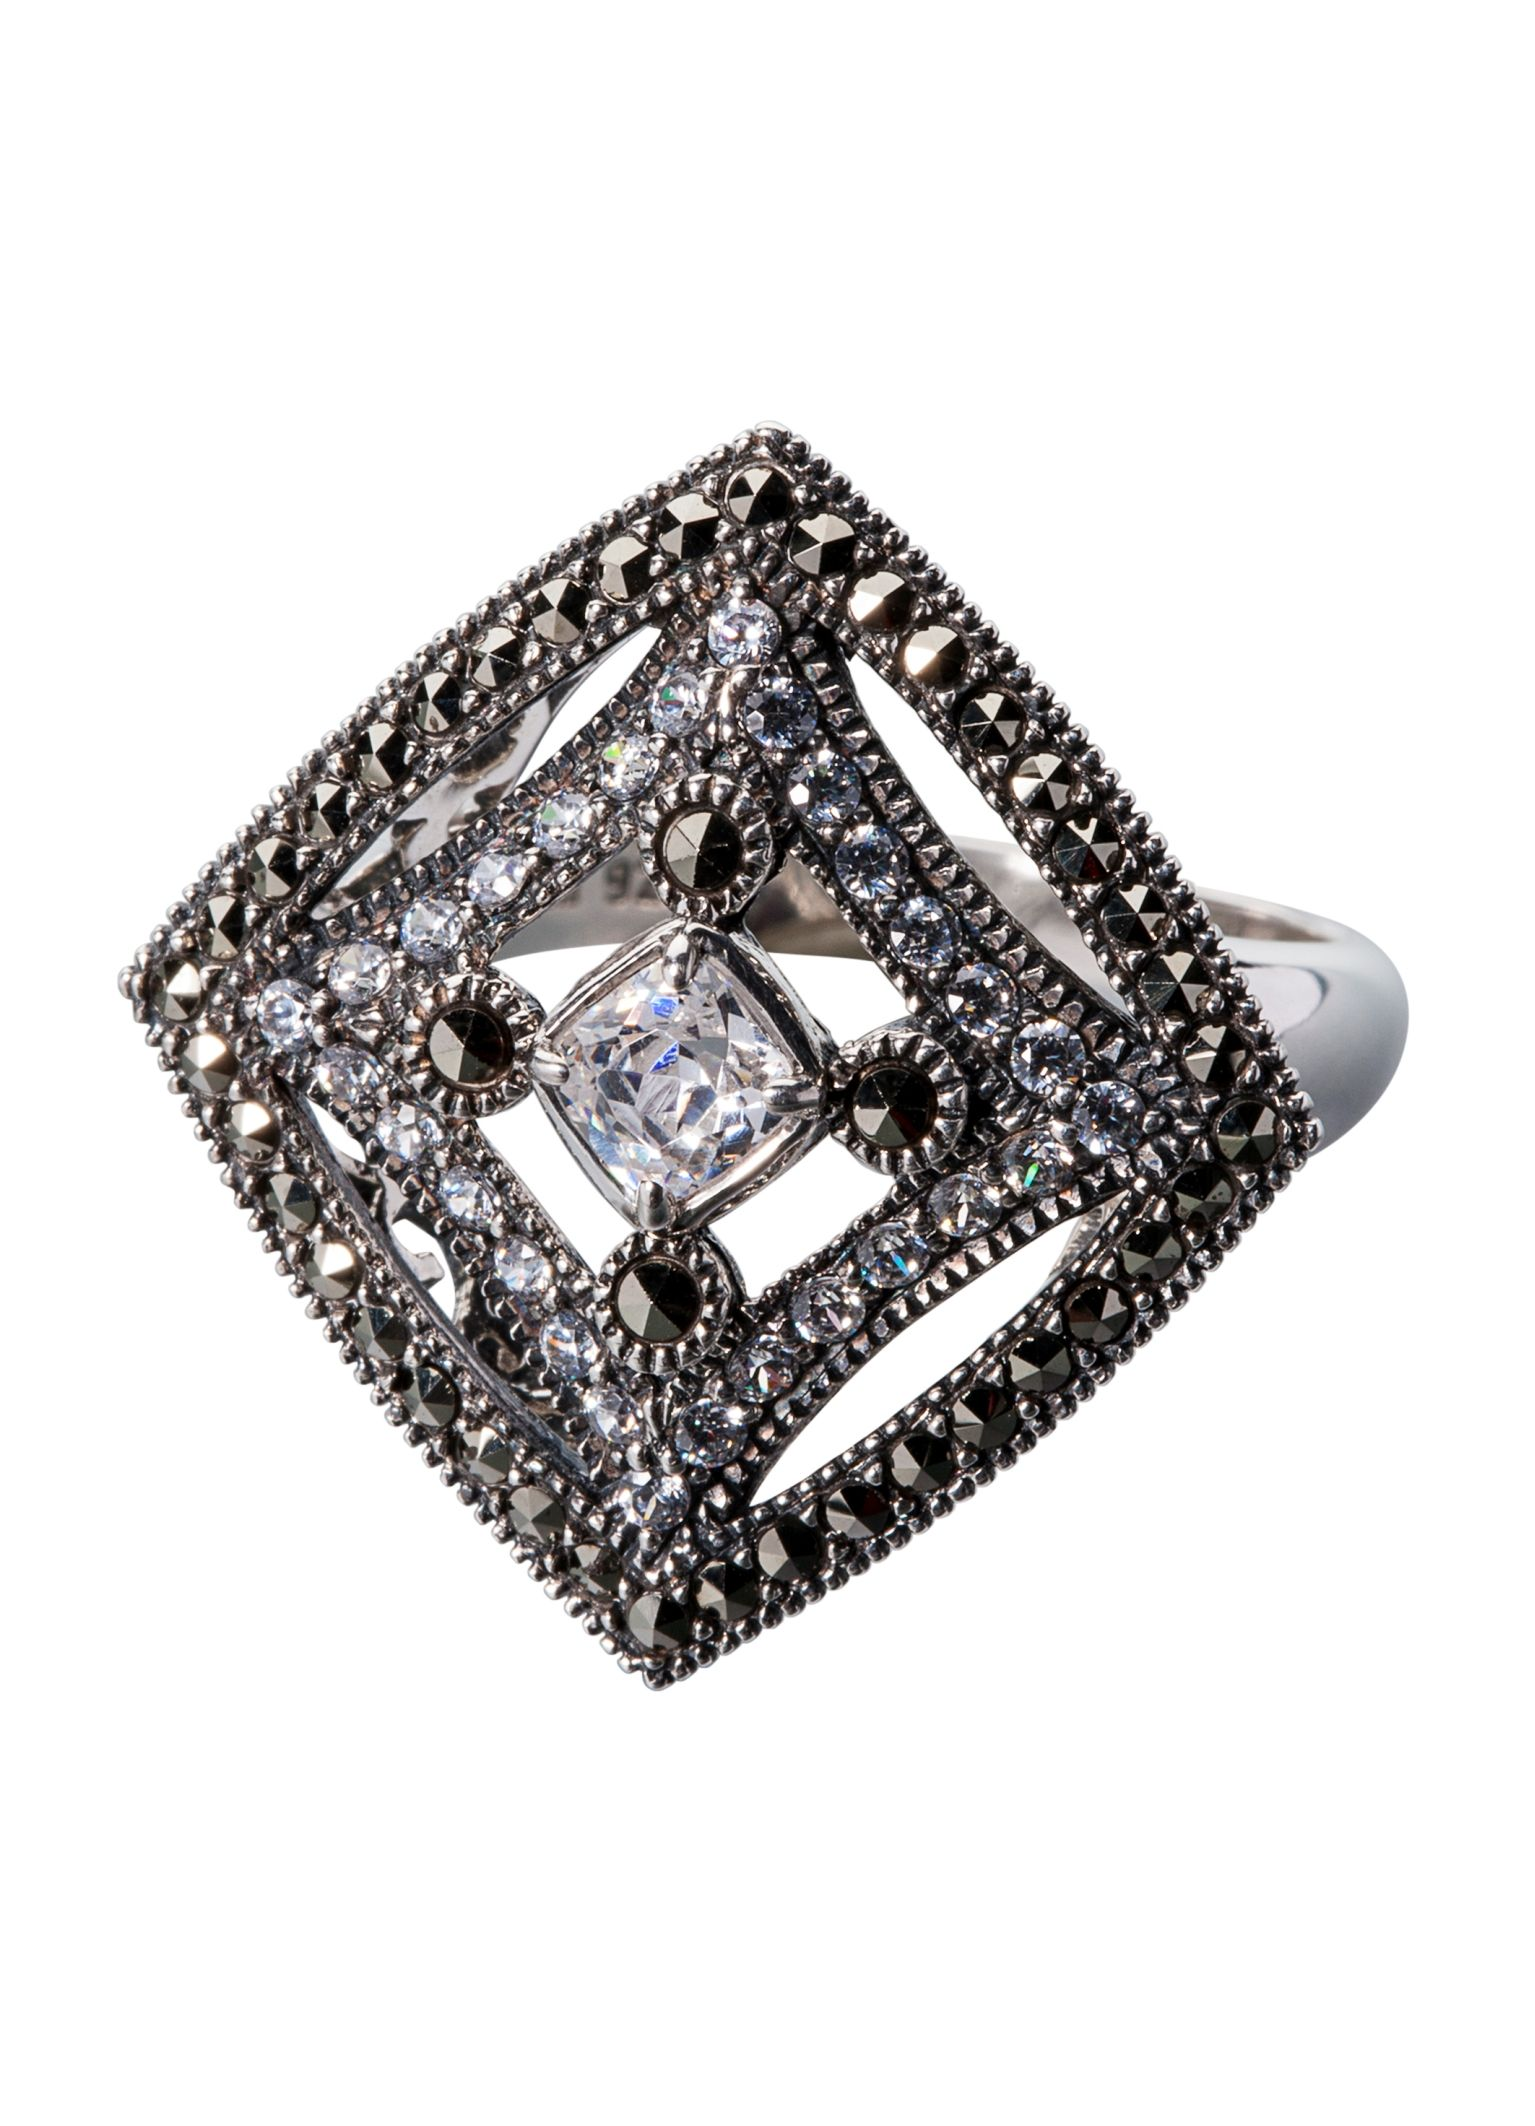 Judith Williams | Women's Fashion | Markasit Ring | #HSE24